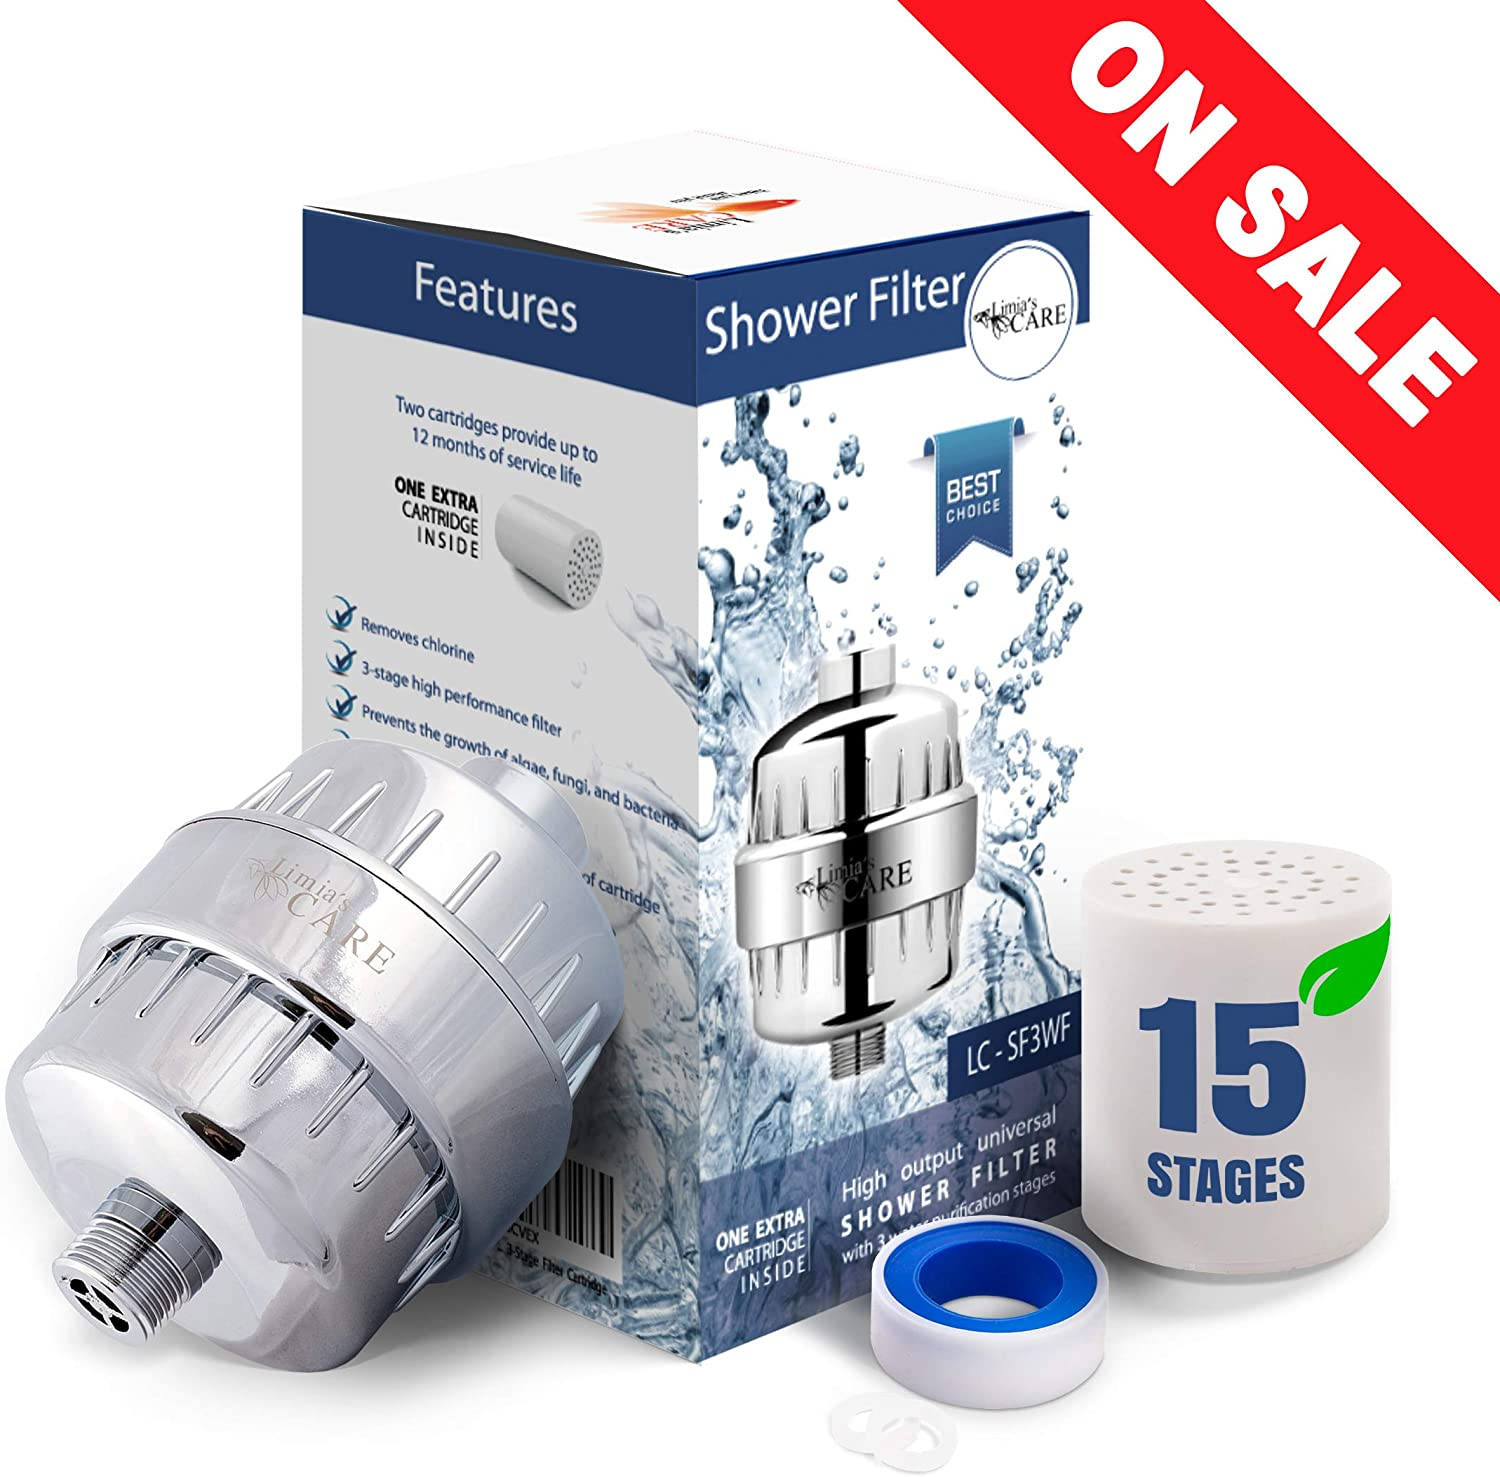 15 Stage Shower Filter - Shower Head Filter - Chlorine Filter - Hard Water Filter - Water Softener - Showerhead Filter - 2 Replaceable Filter Cartridges - Water Filter For Shower Head